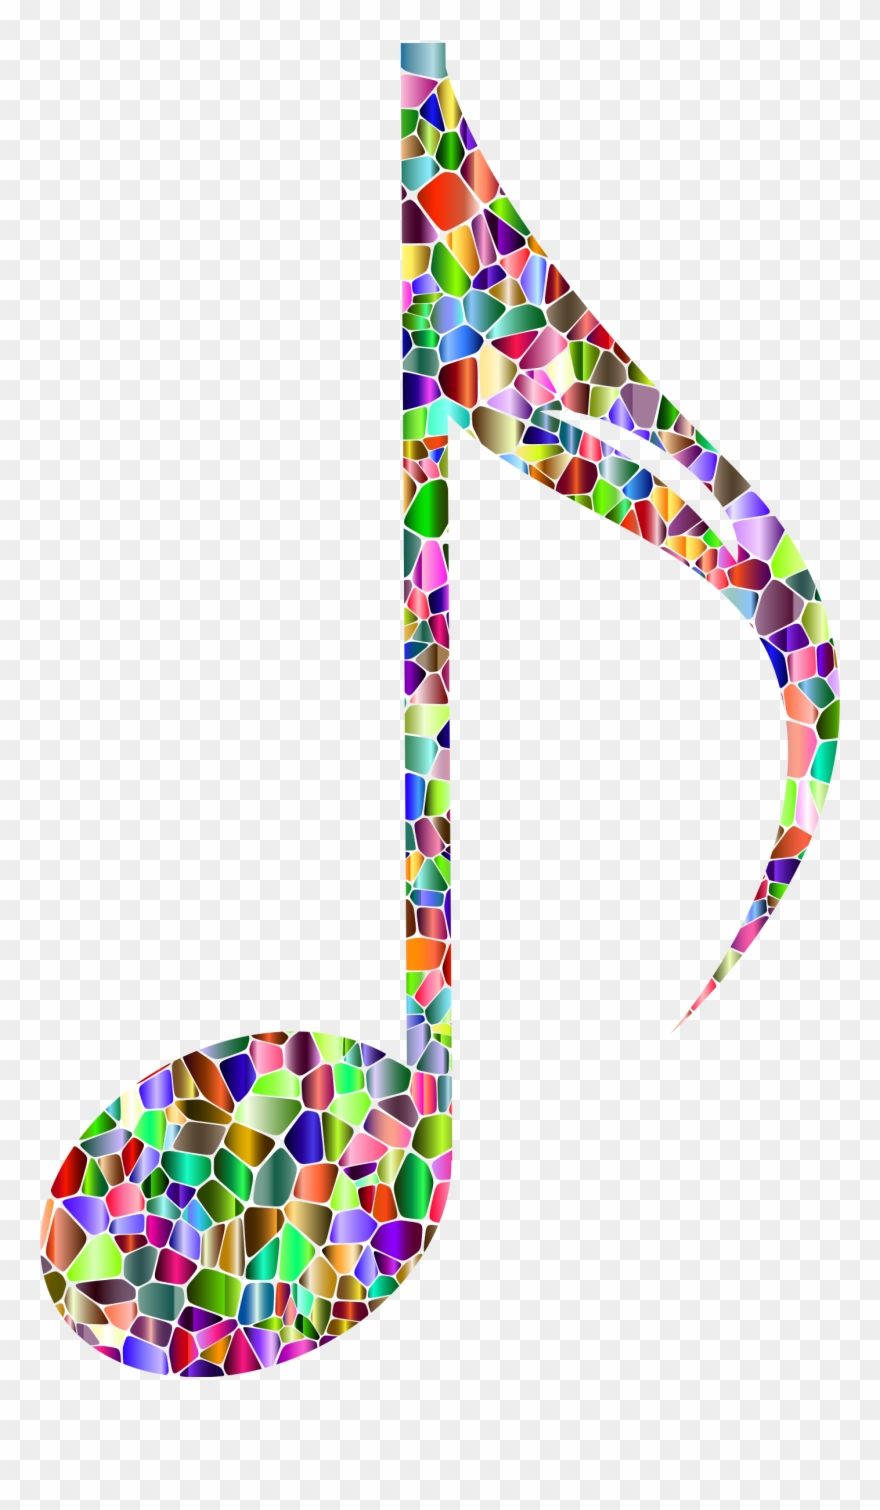 Music notes rainbow. Big image png clipart